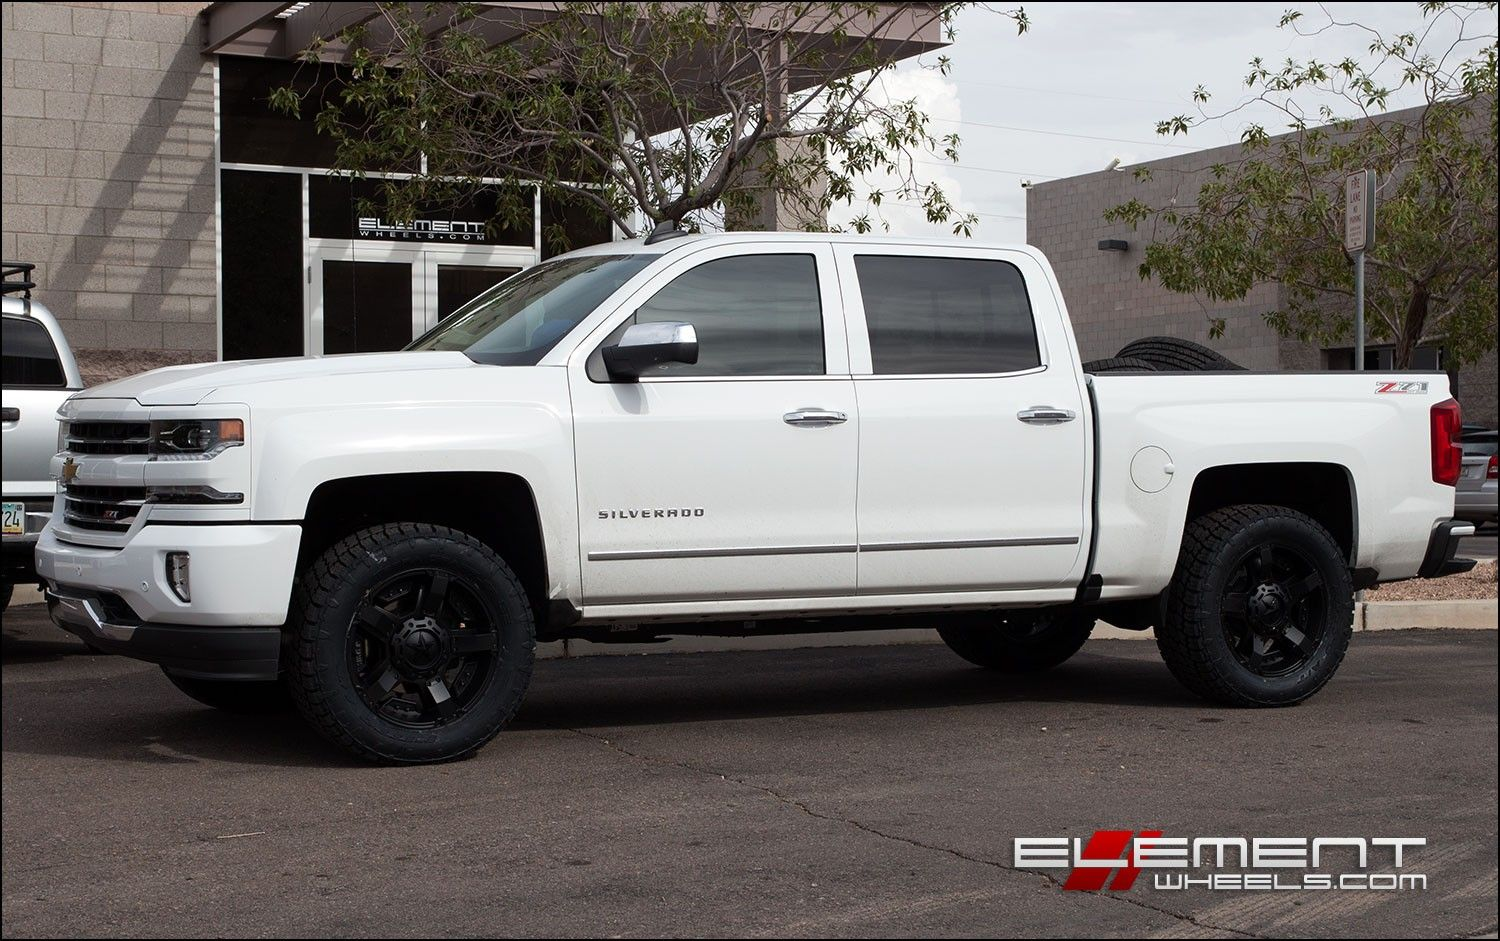 All Chevy chevy 1500 wheels : Black Wheels for Silverado 1500 | Wheels - Tires Gallery ...